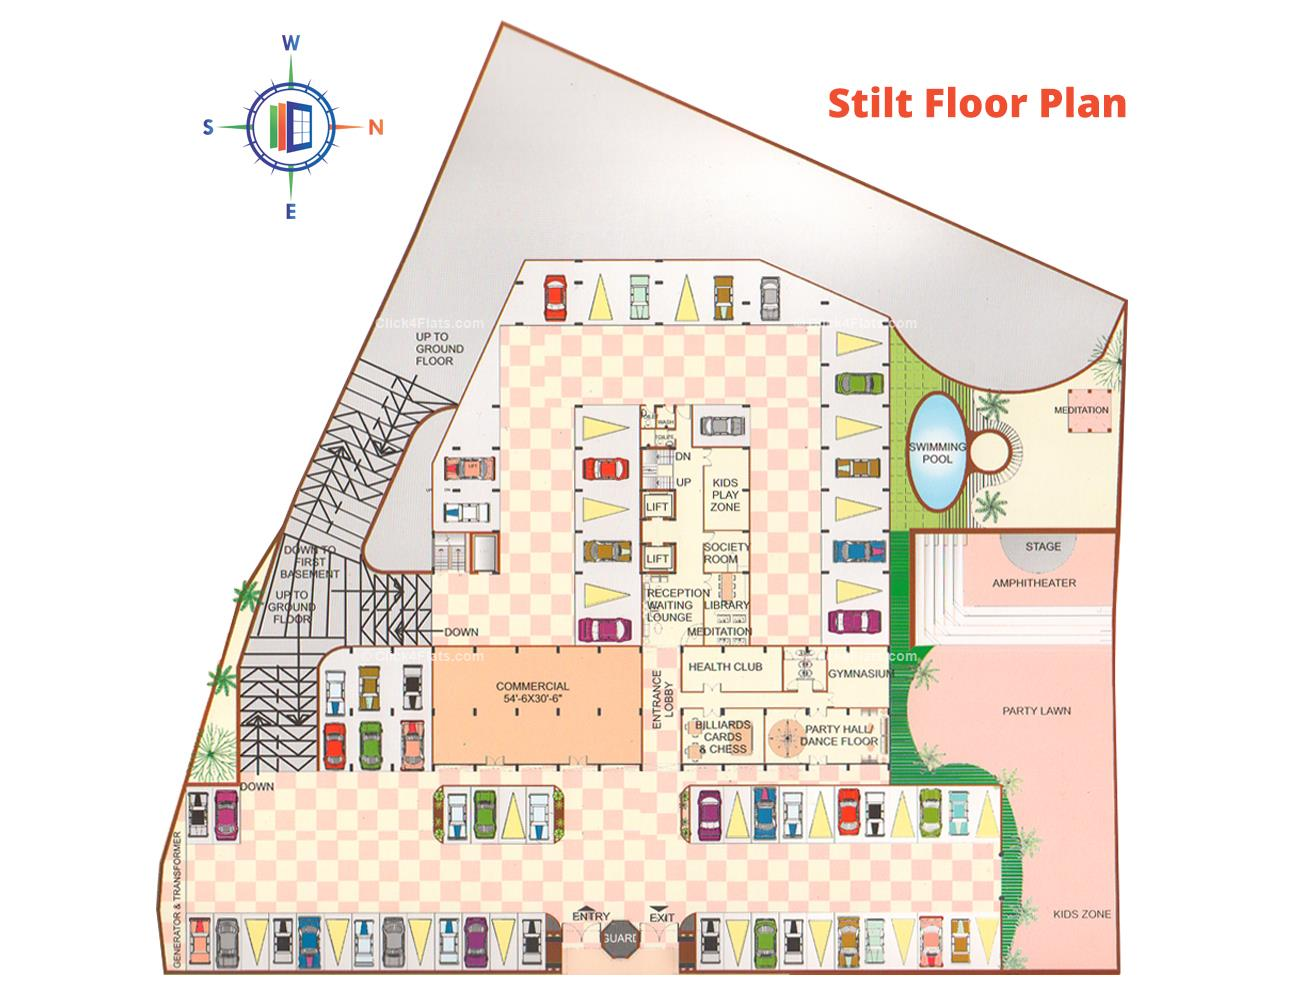 Pearl Vegas Stilt Floor Plan